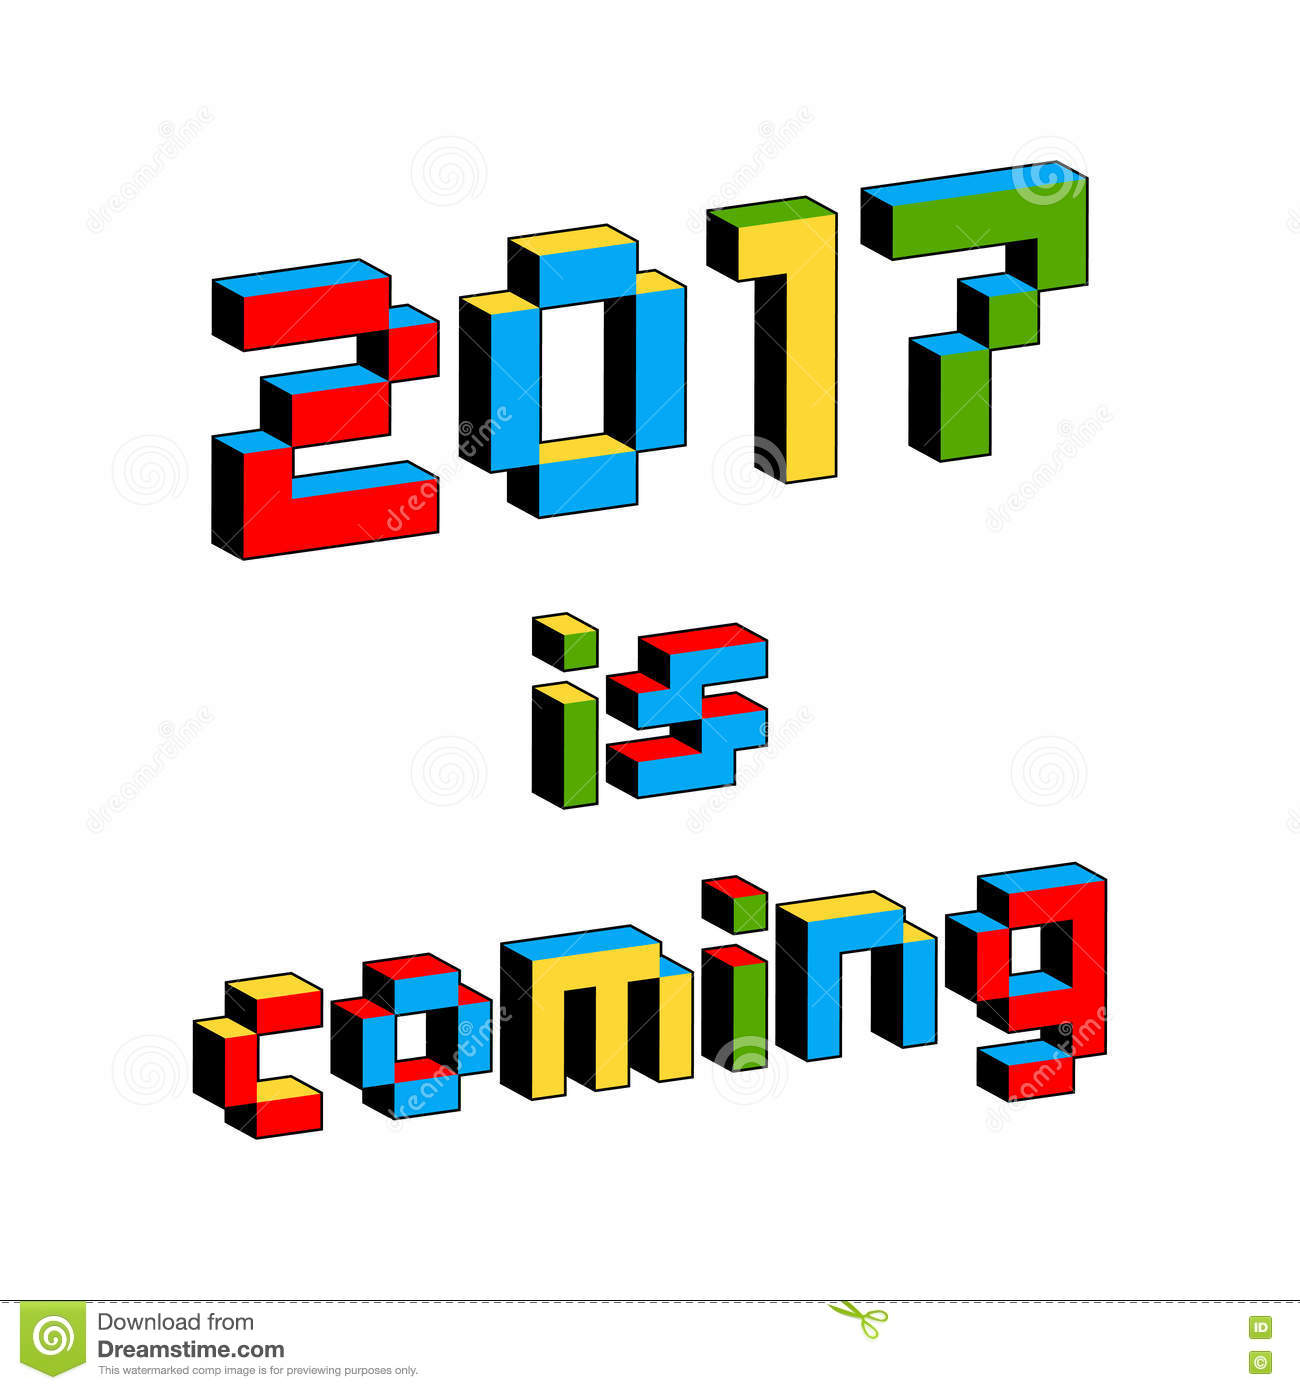 2017 Is Coming Text In Style Of Old 8-Bit Video Games. Vibrant Colorful